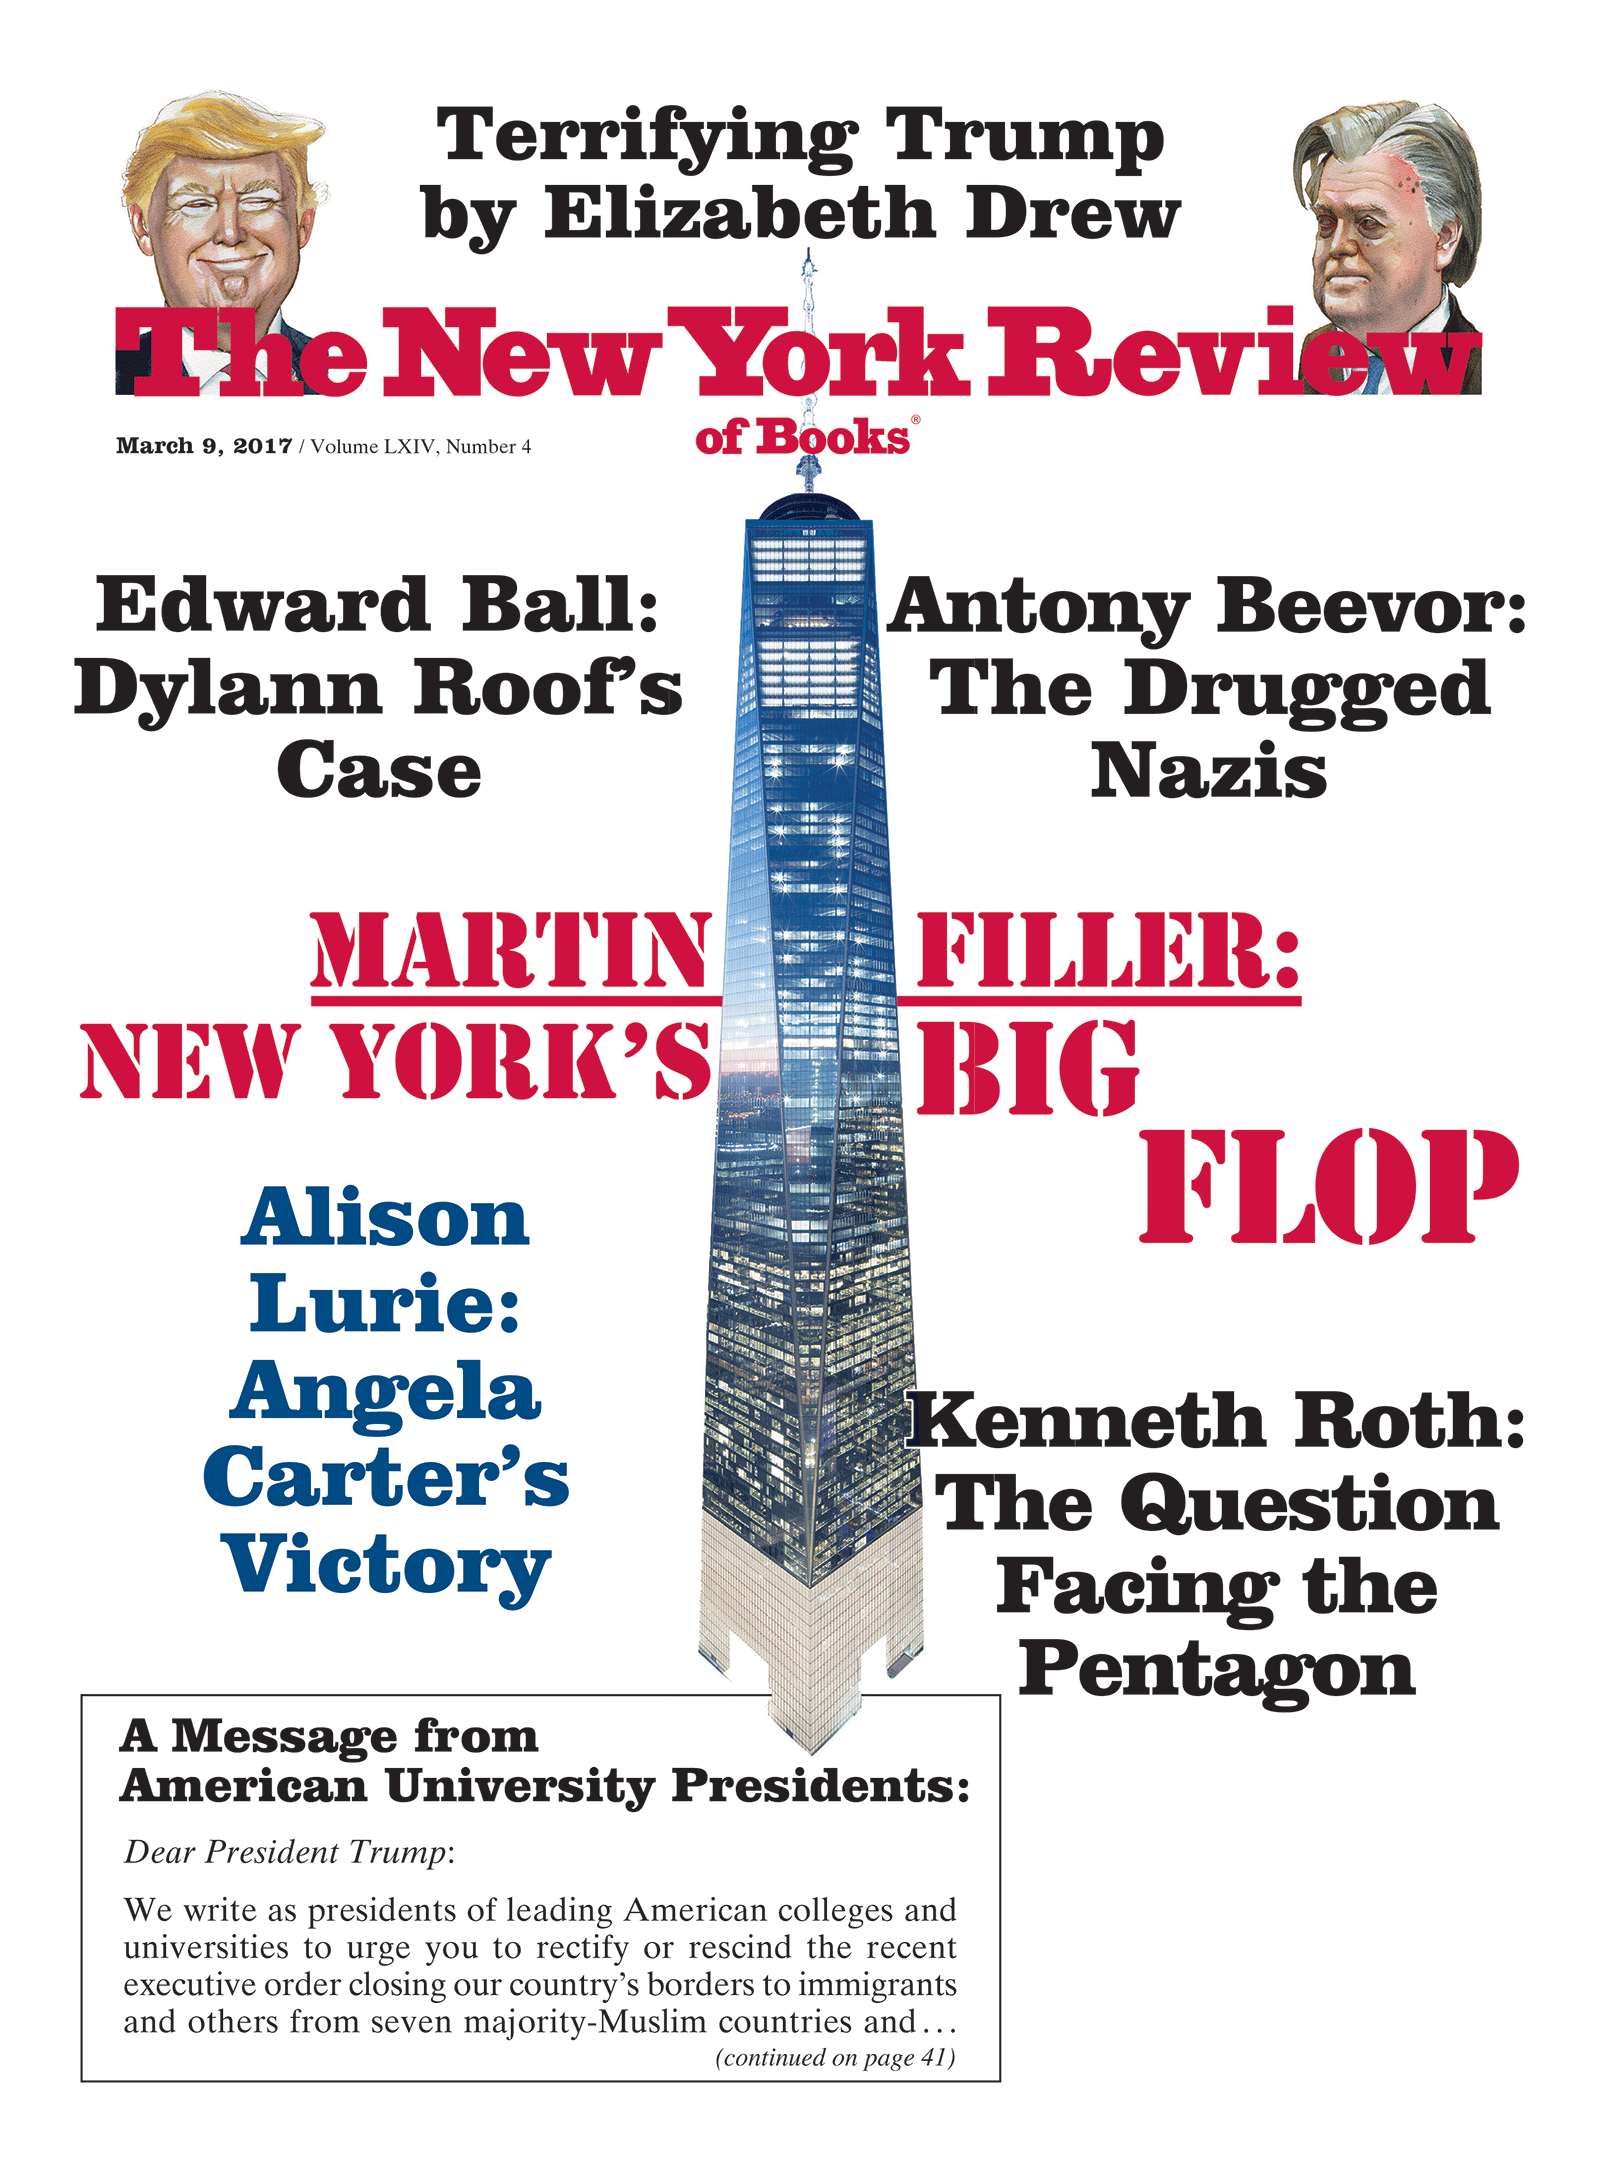 Image of the March 9, 2017 issue cover.